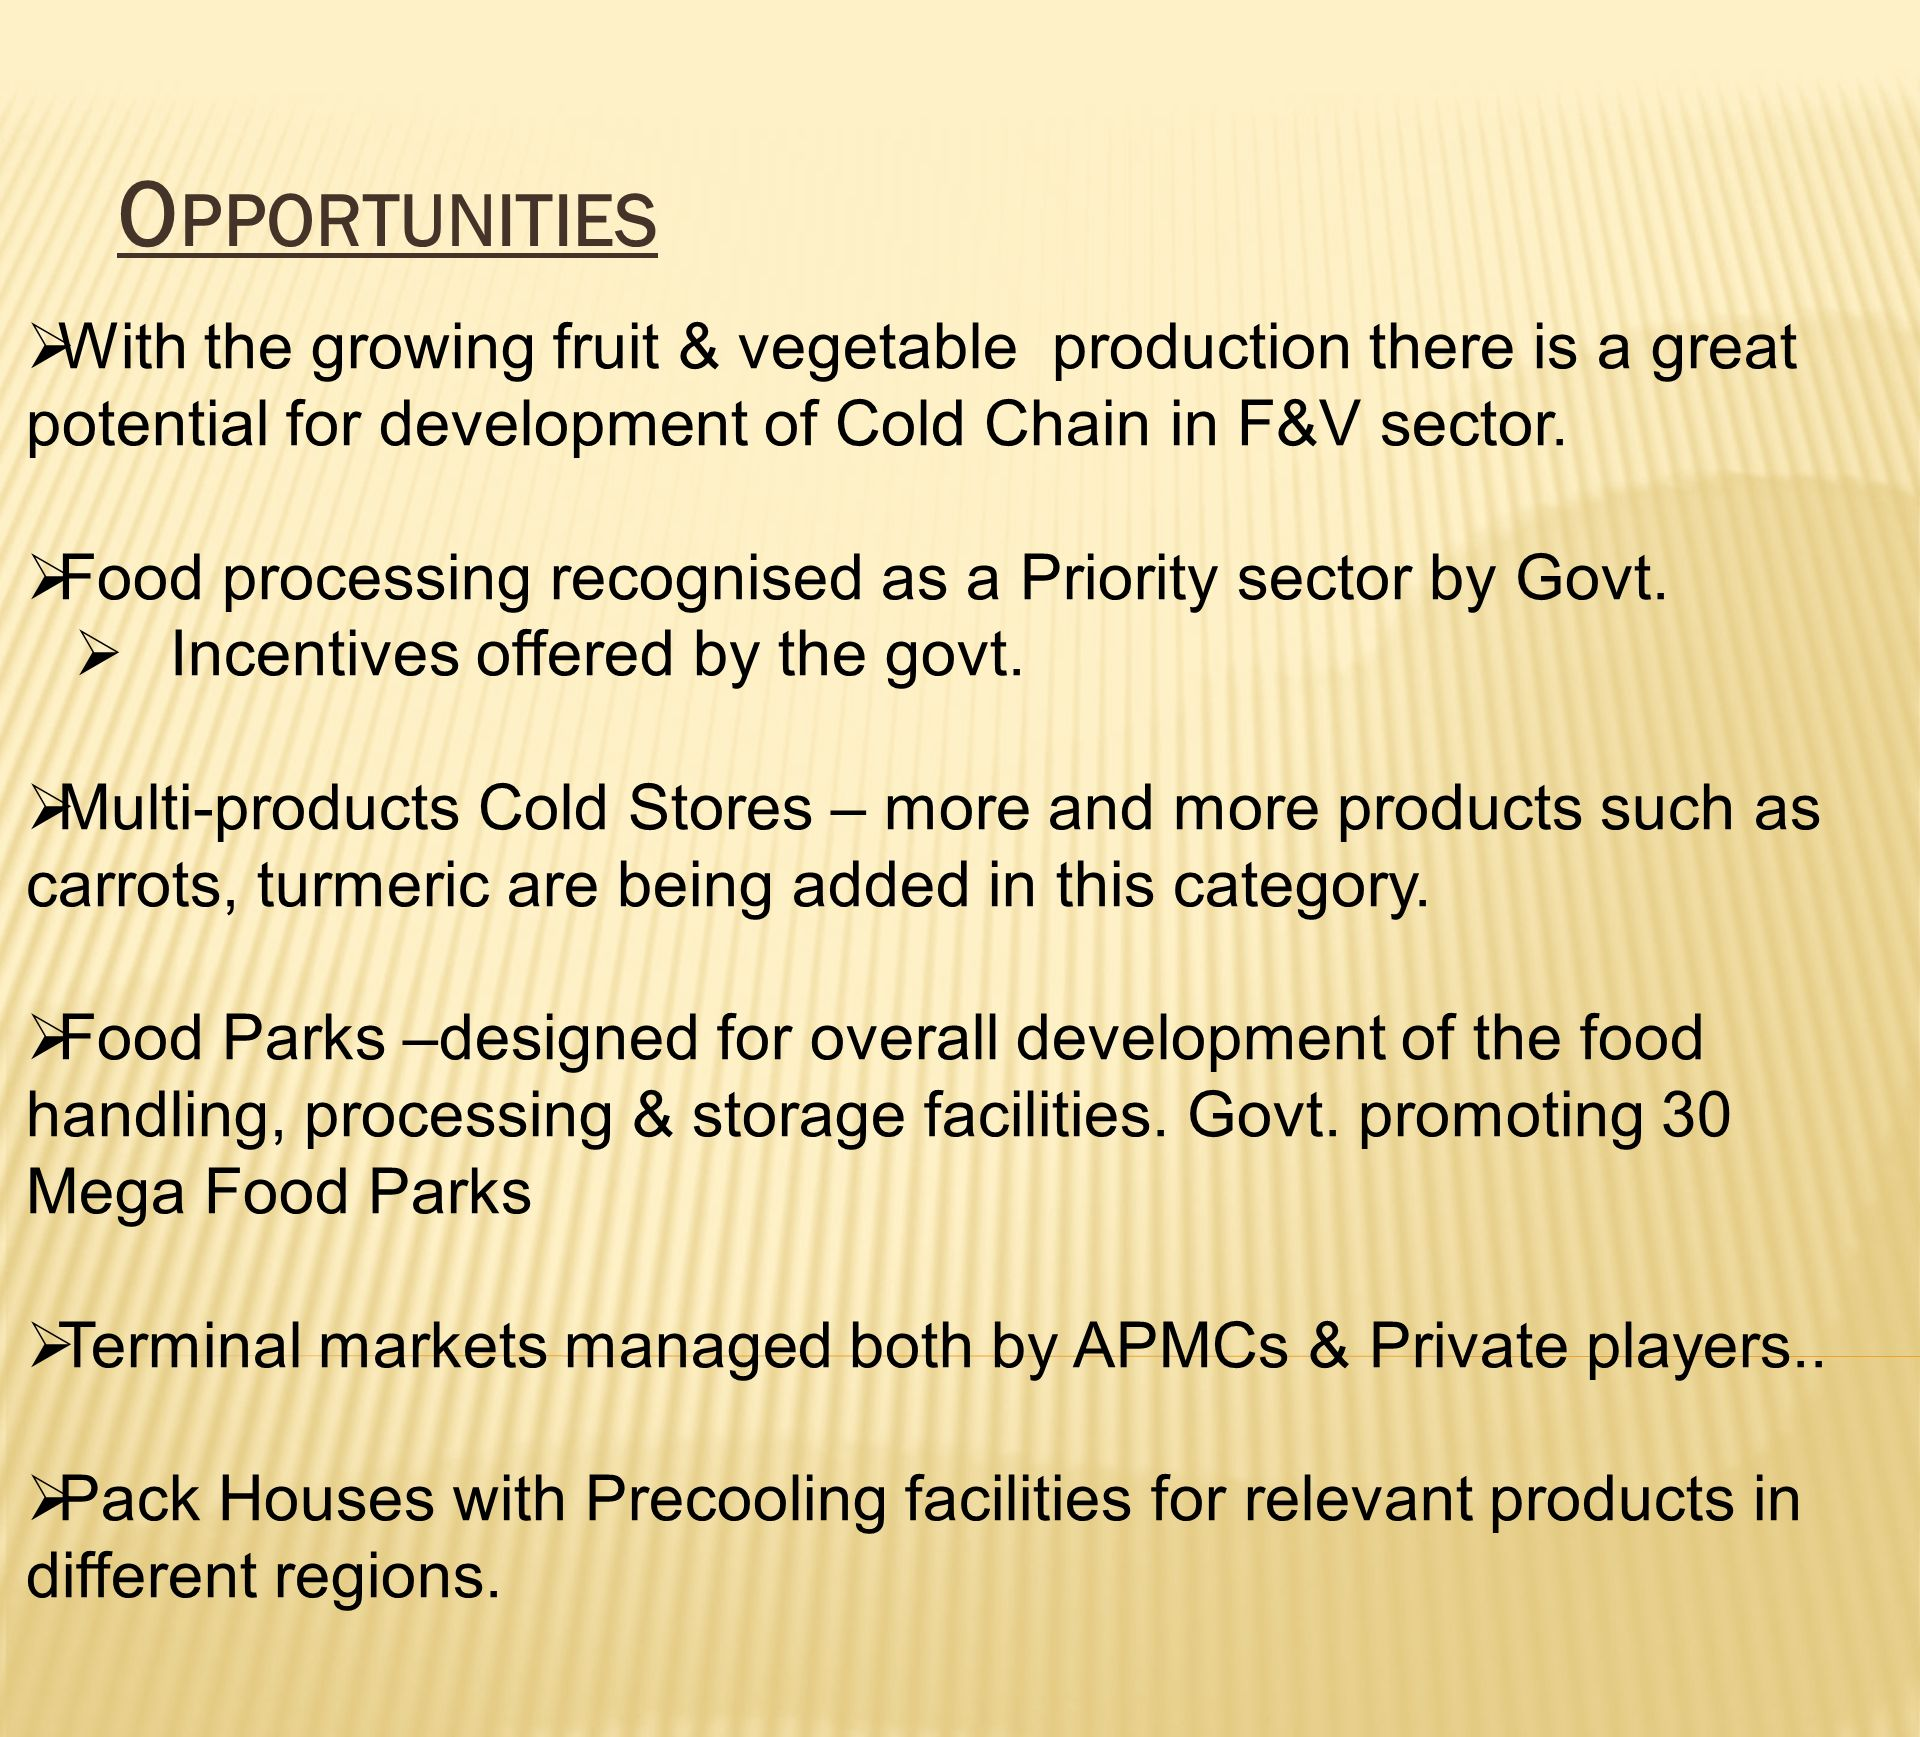 Opportunities With the growing fruit & vegetable production there is a great potential for development of Cold Chain in F&V sector.